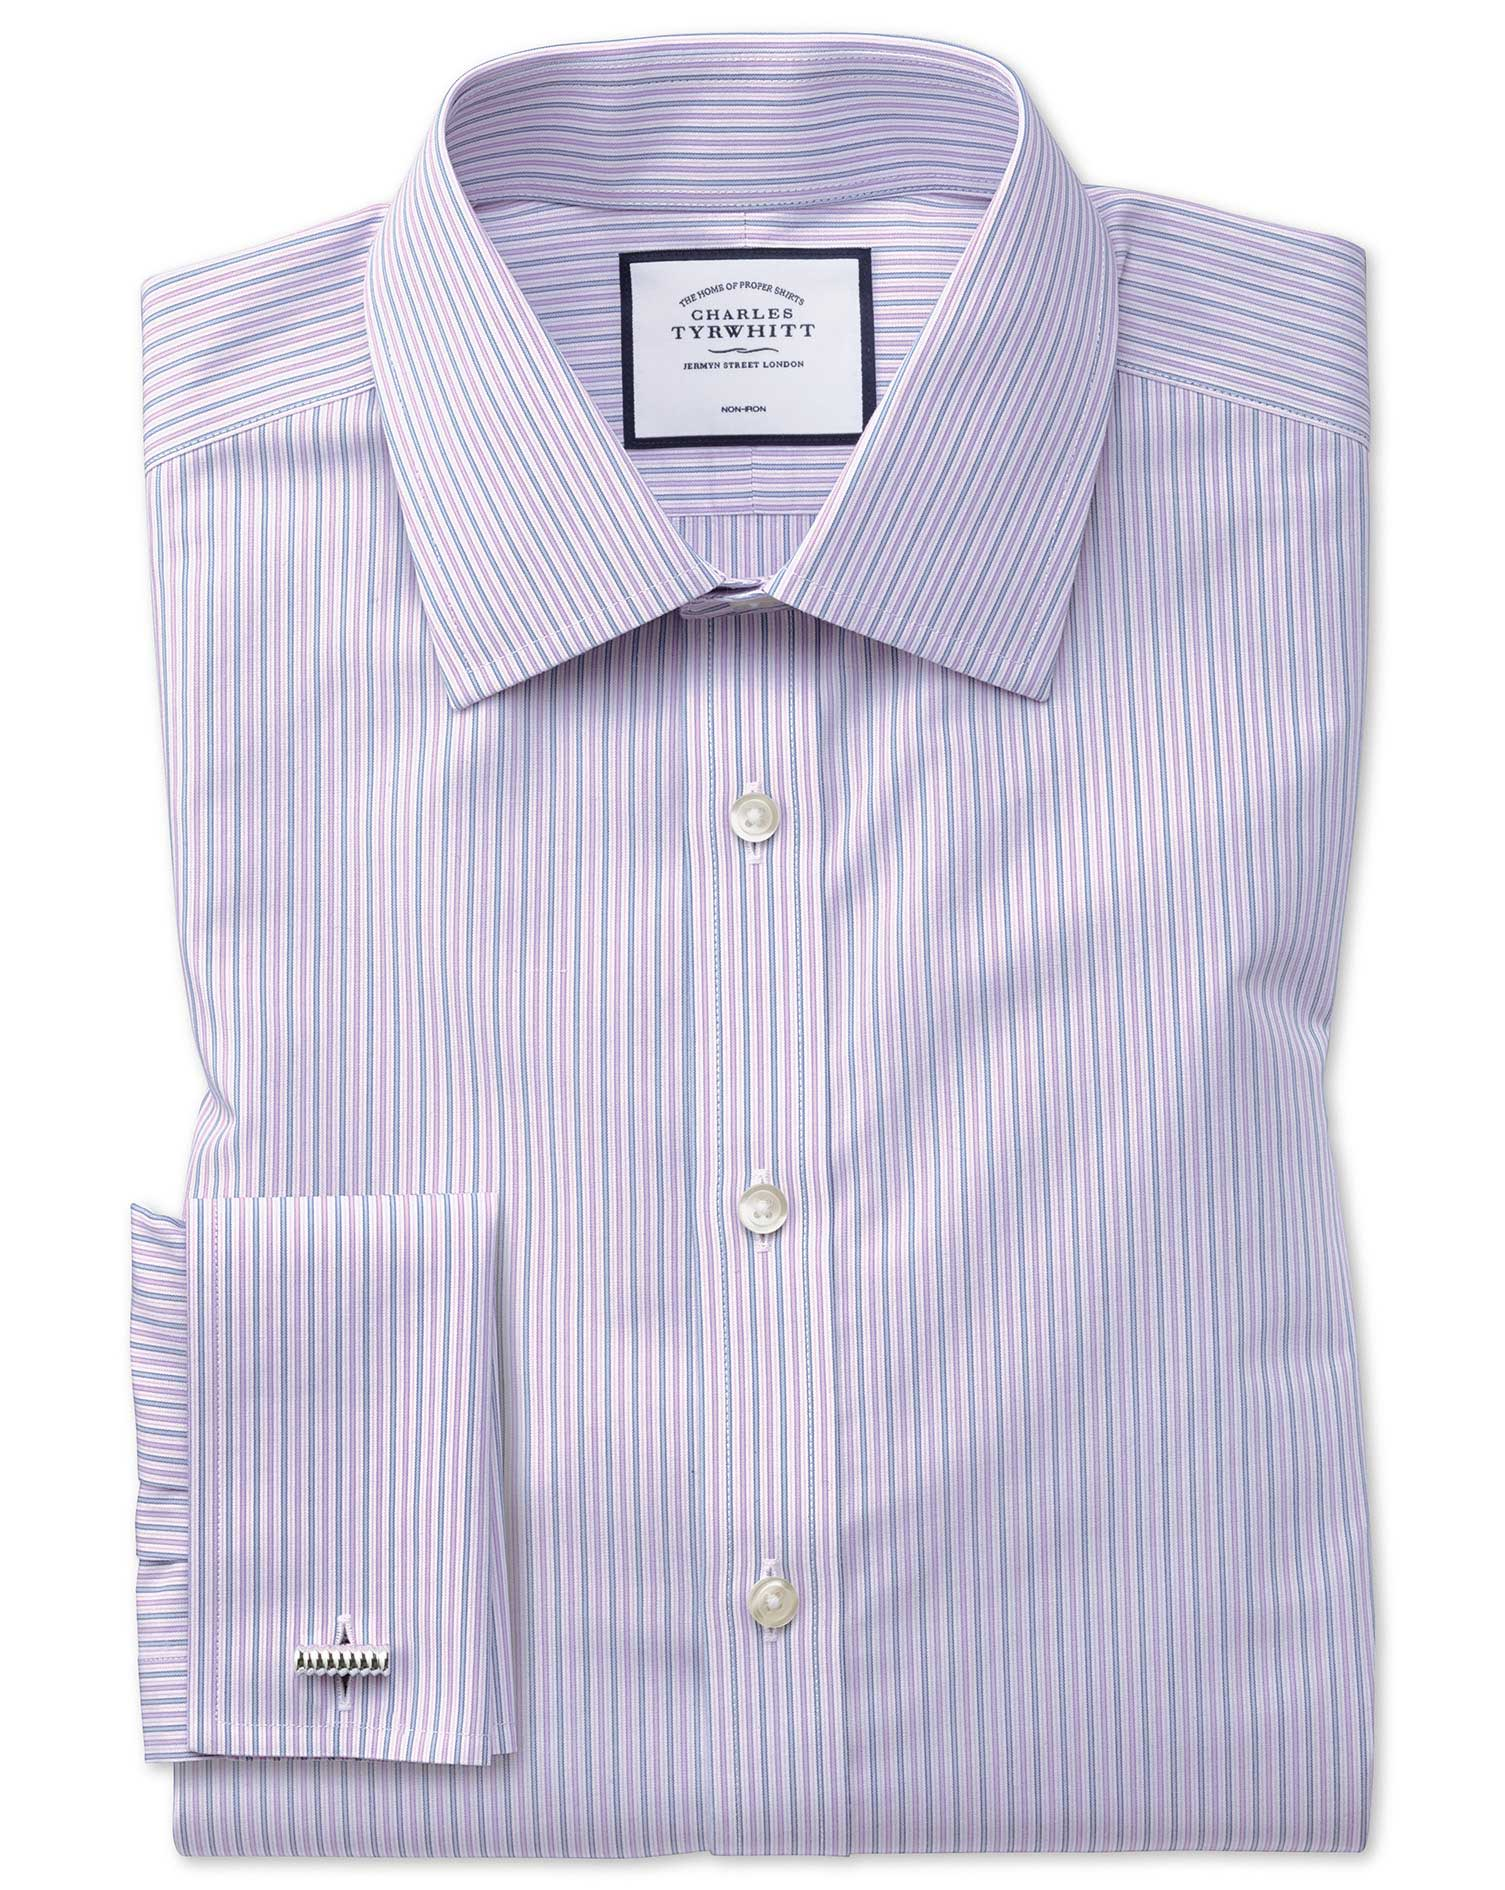 Classic Fit Non-Iron Lilac and Blue Multi Stripe Cotton Formal Shirt Single Cuff Size 16/36 by Charl